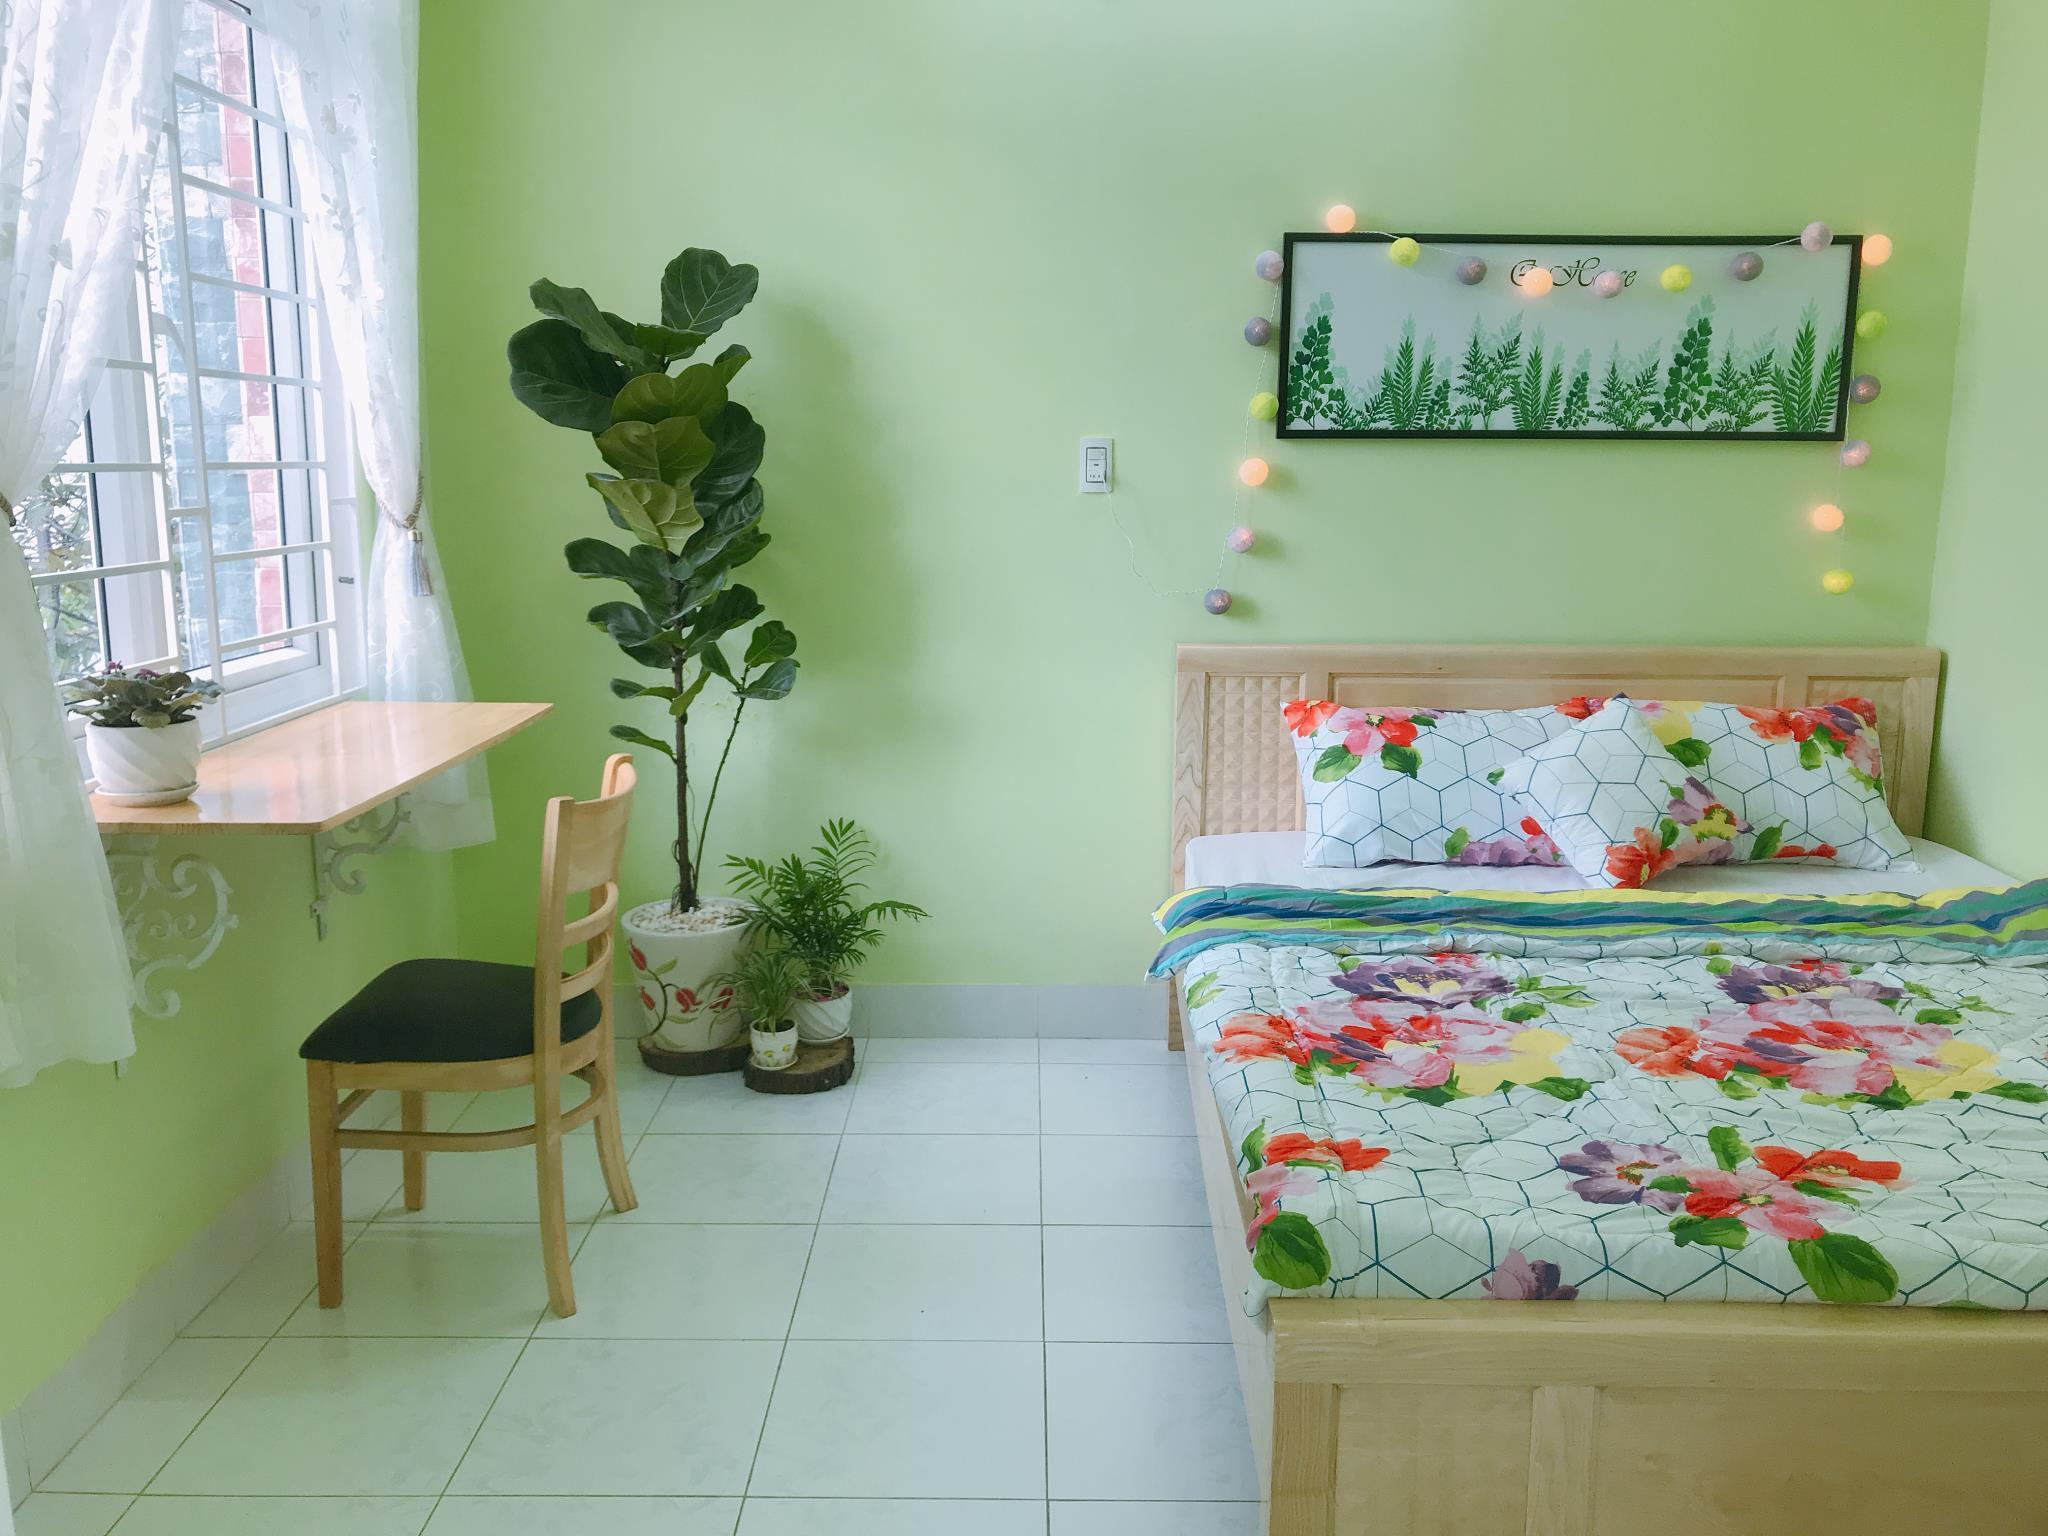 1 KING BED ROOM GARDEN AT Q HOUSE QUY NHON